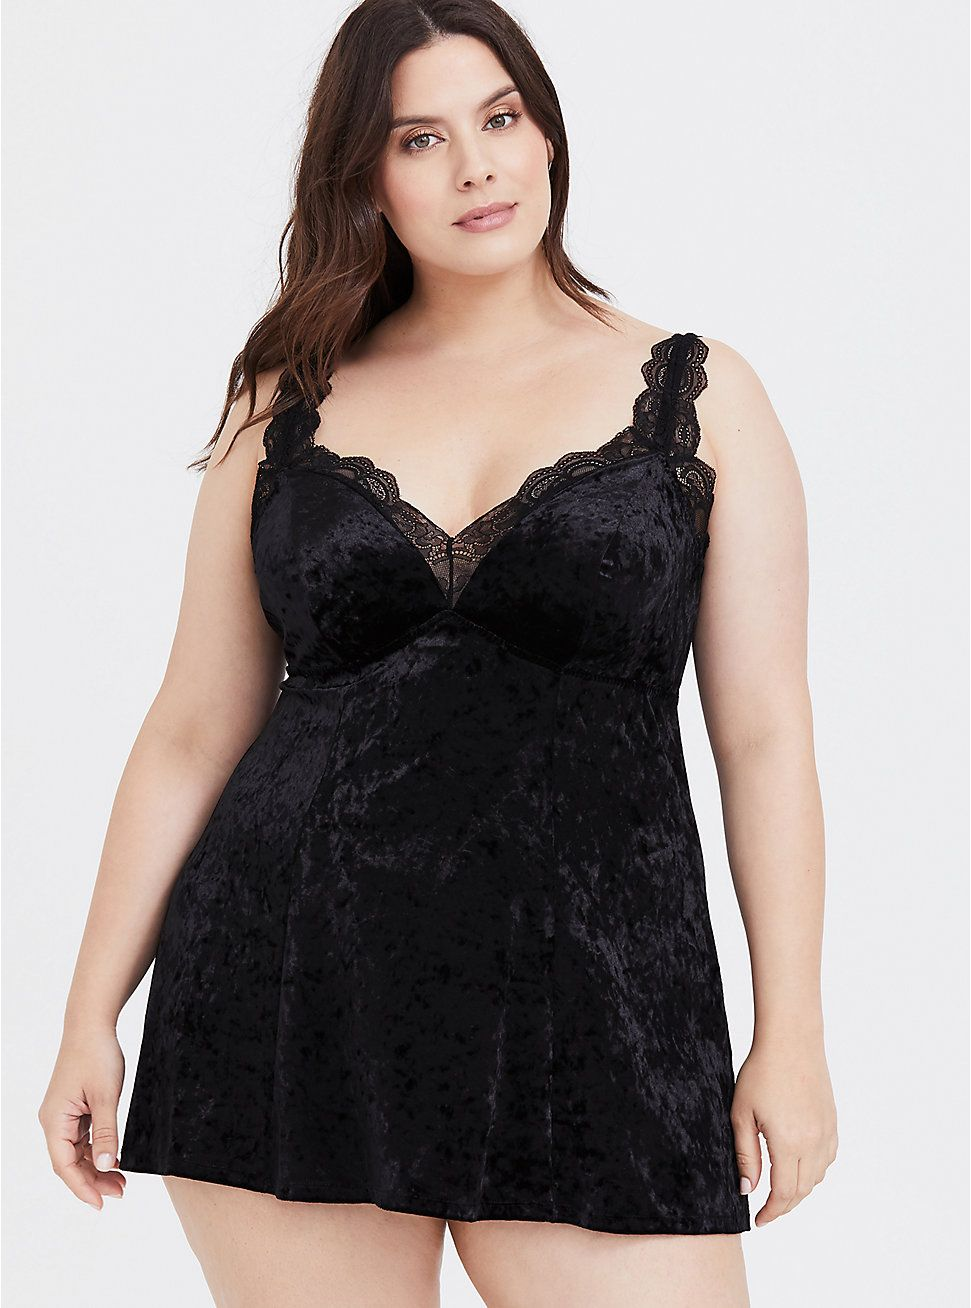 27716989a419f Black Velvet Babydoll in 2019